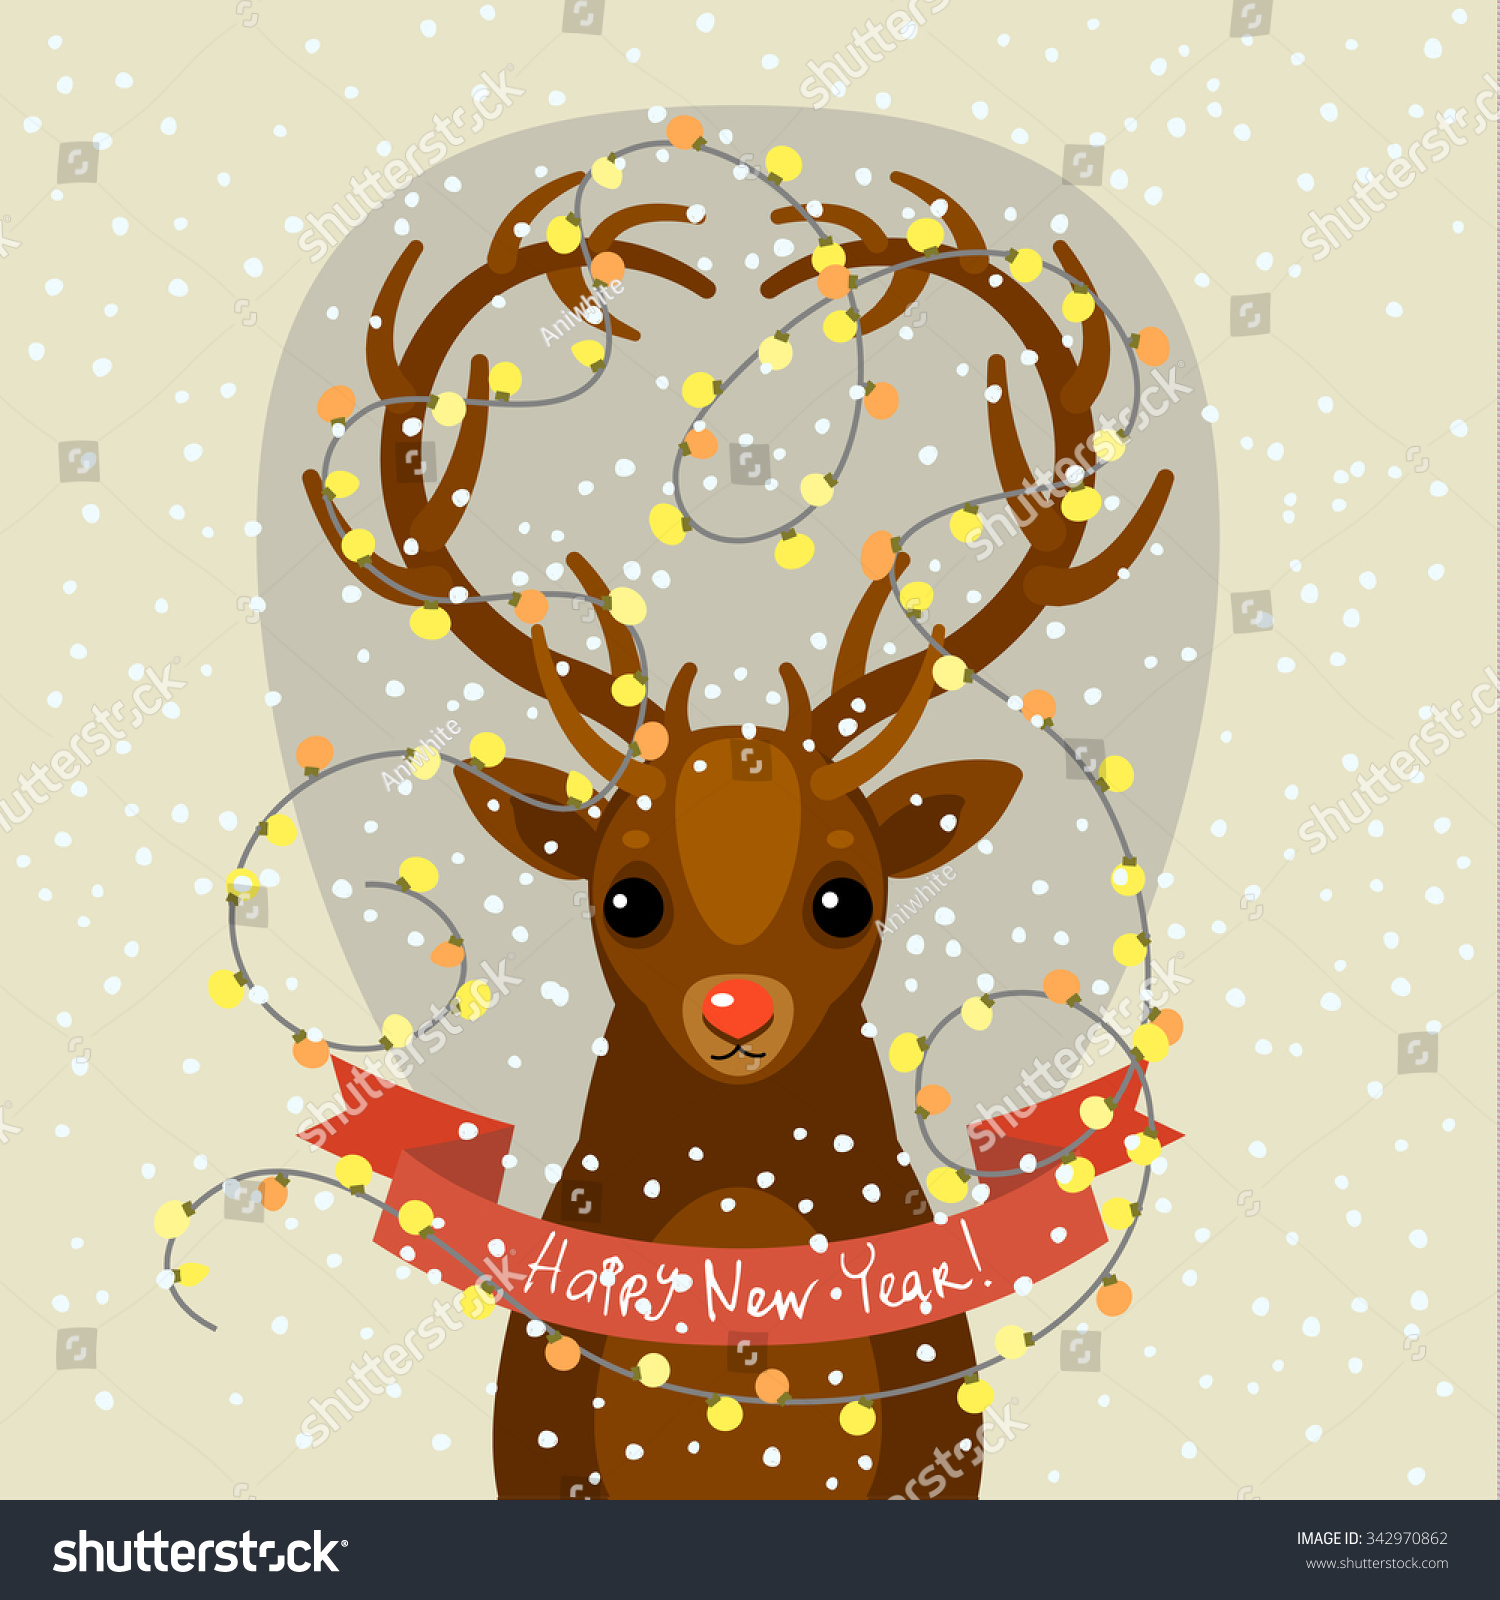 Holiday illustration cute cartoon deer lights stock vector holiday illustration with a cute cartoon deer with lights on the horns christmas card with kristyandbryce Gallery